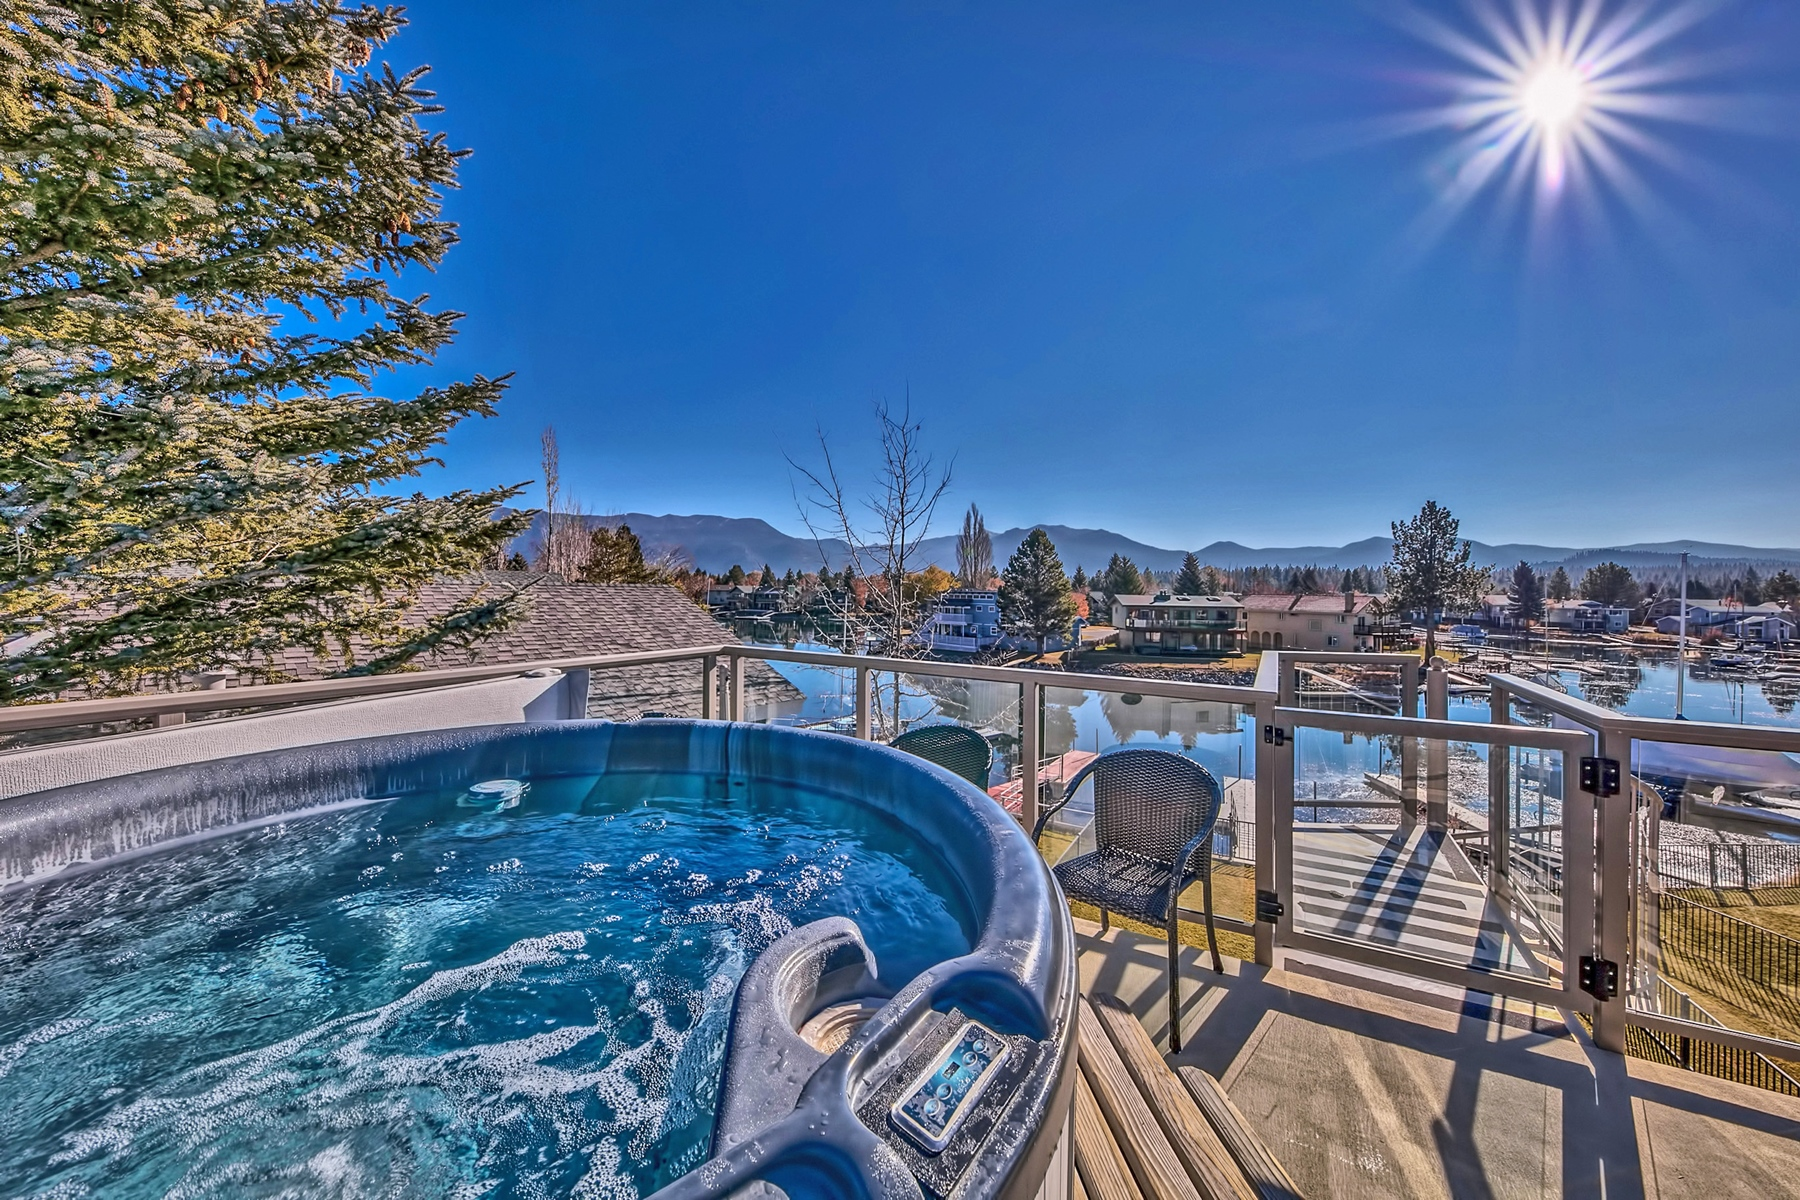 Additional photo for property listing at 1705 Venice Drive, South Lake Tahoe, Ca 96150 1705 Venice Drive South Lake Tahoe, California 96150 United States